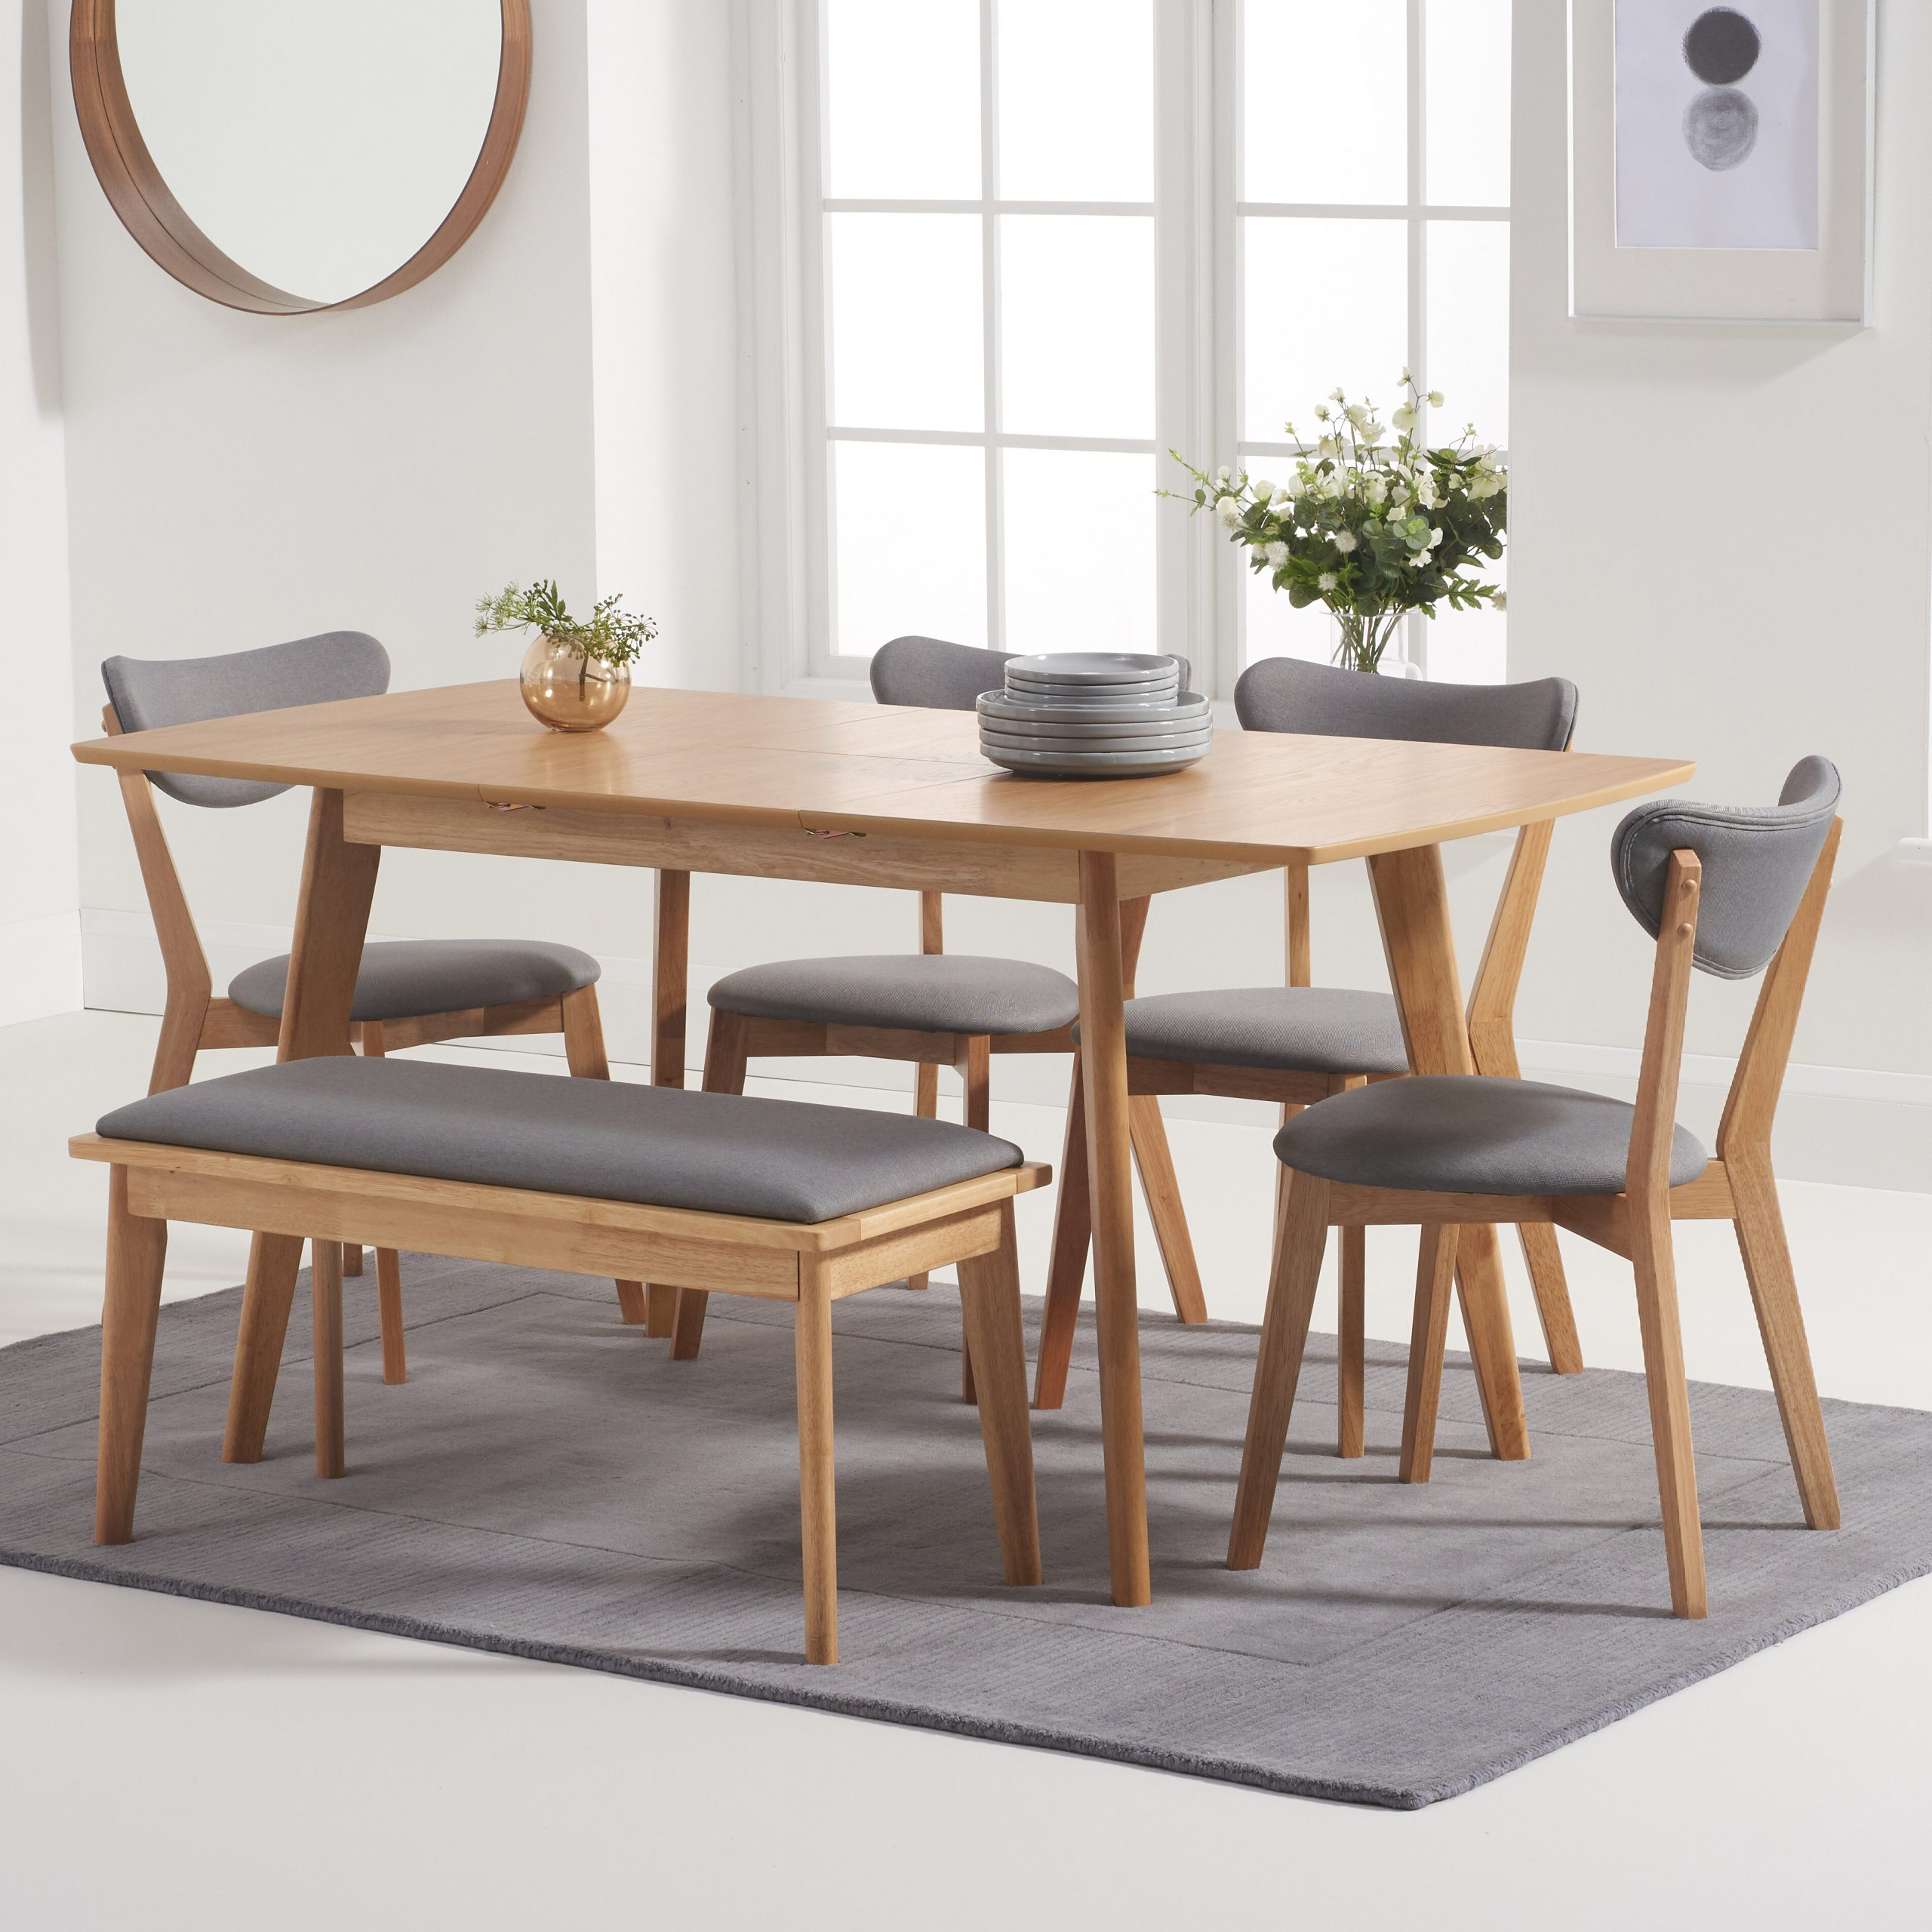 Ideas About Extending Dining Bench, – Howellmagic Dining Intended For Fashionable Alfresco Brown Banks Extending Dining Tables (View 14 of 25)